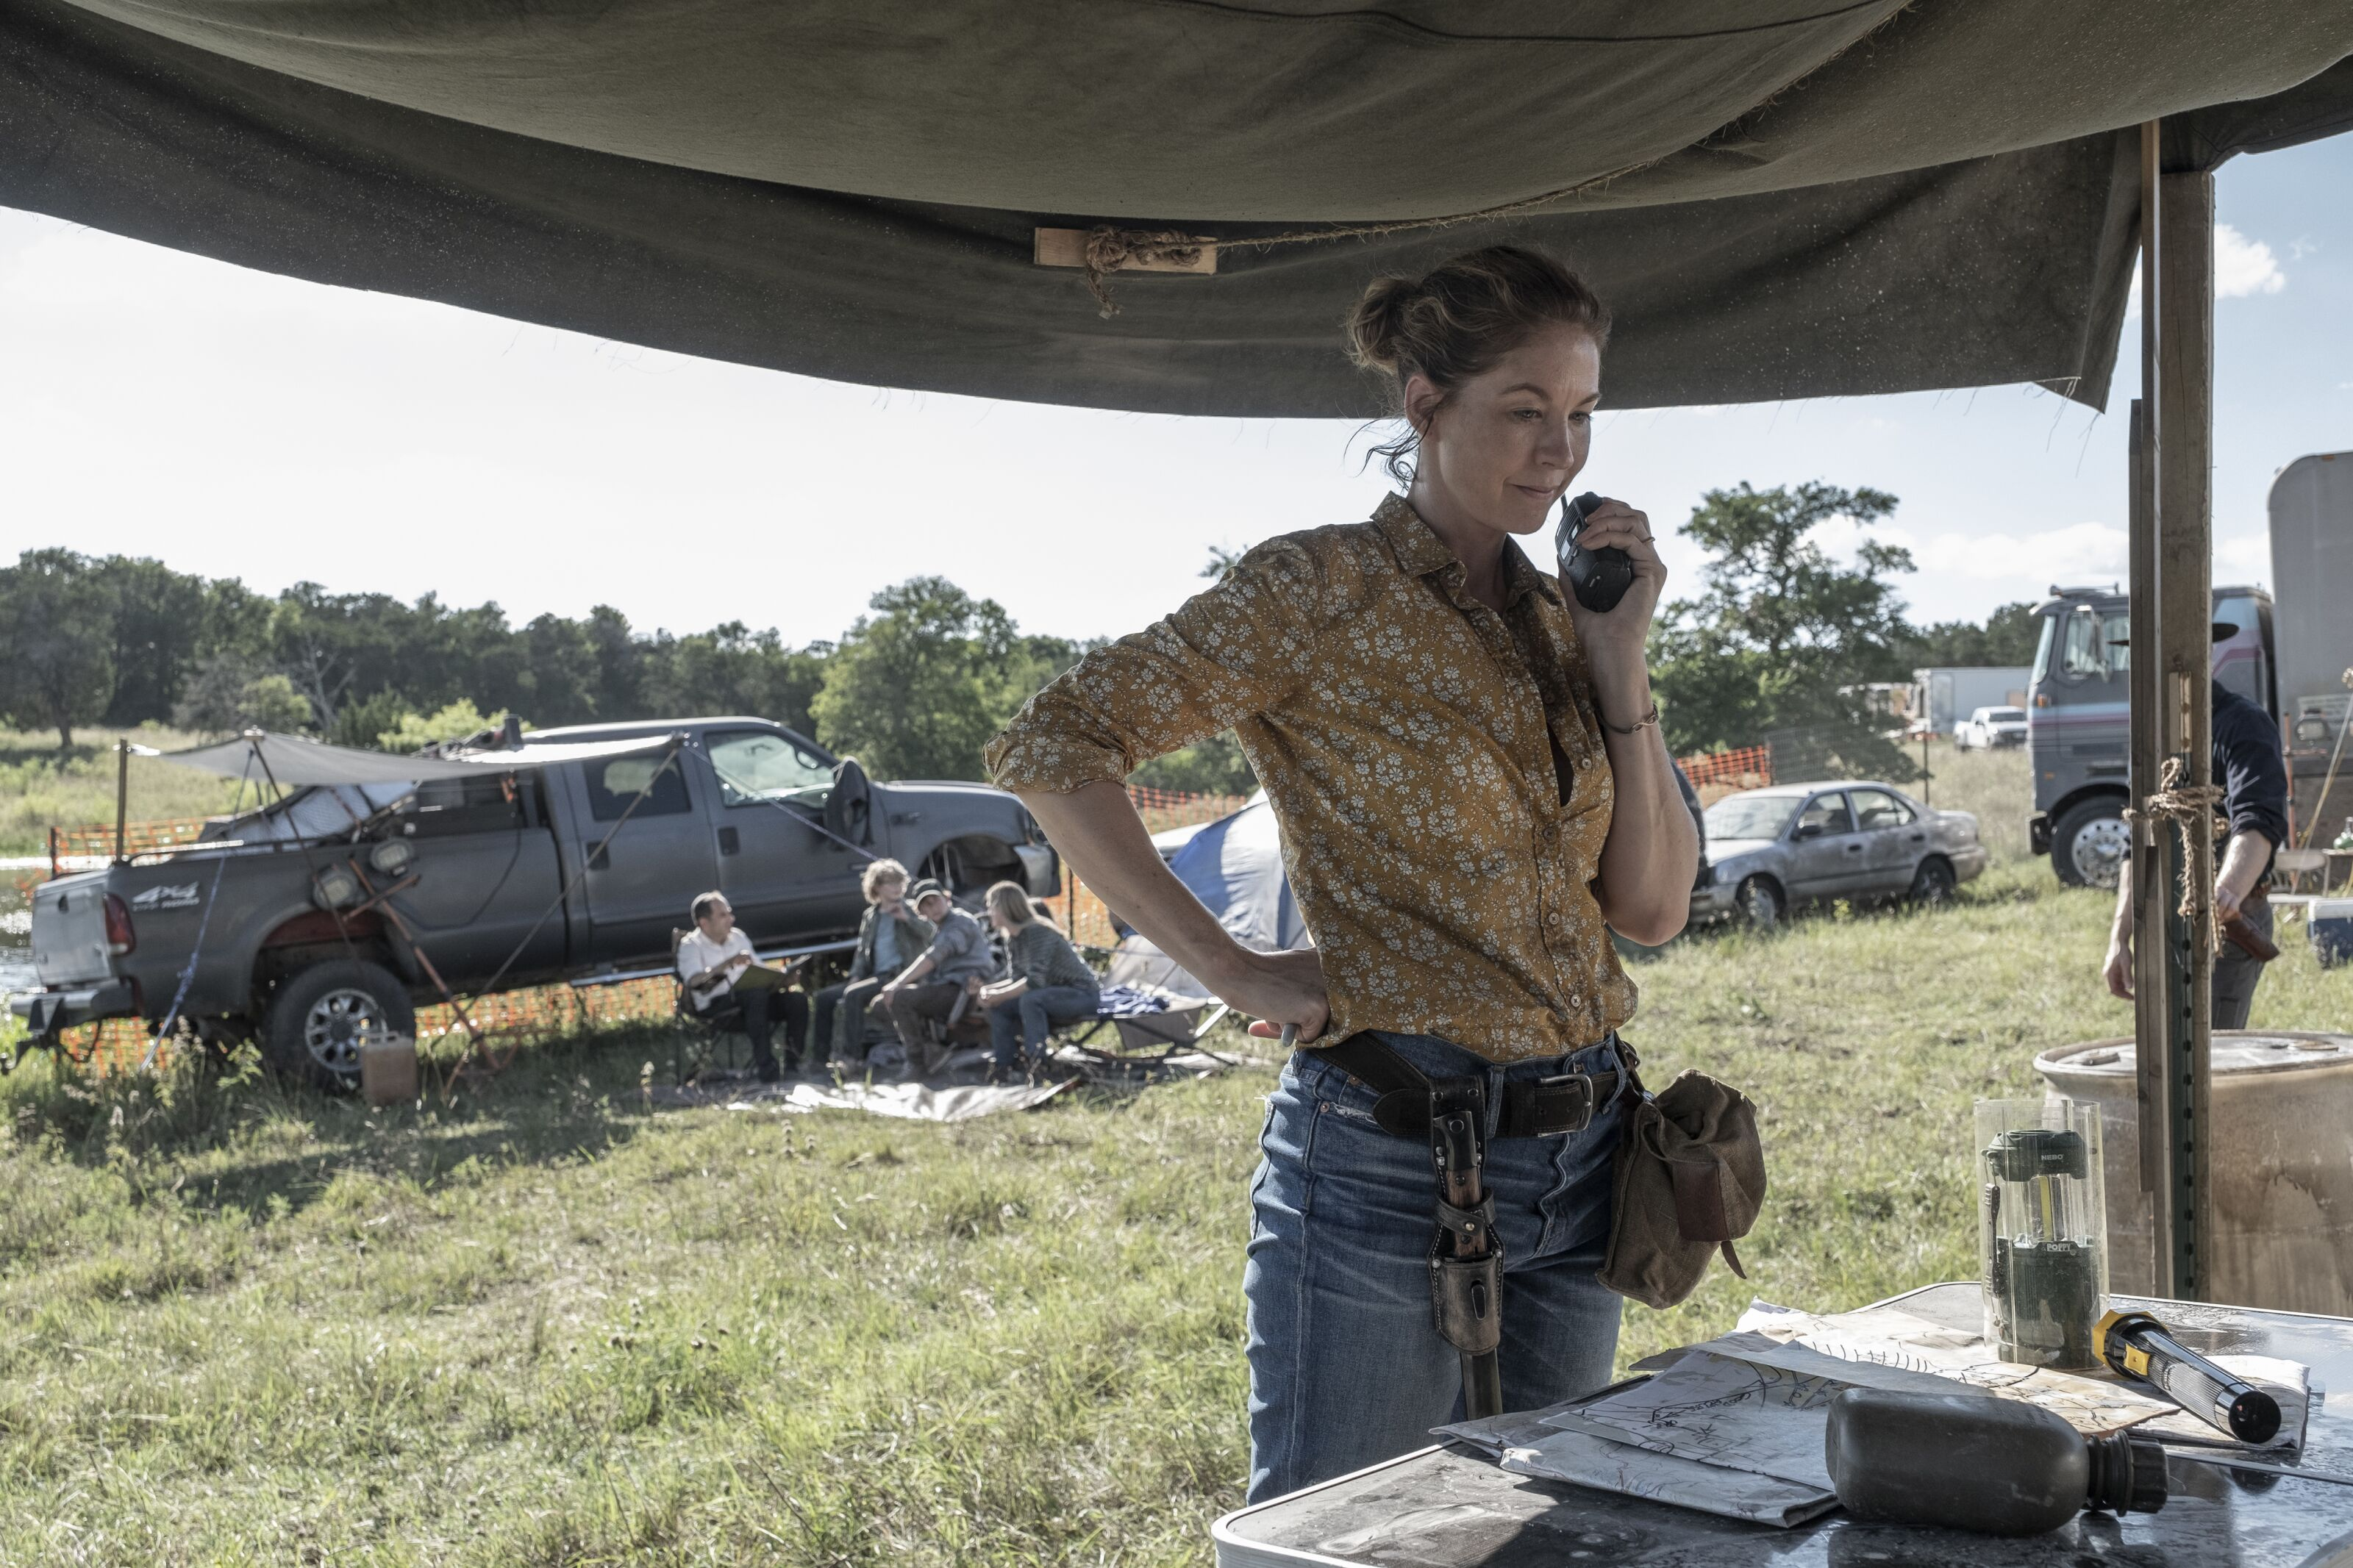 Fear the Walking Dead season 5 episode 15 live stream: Watch online